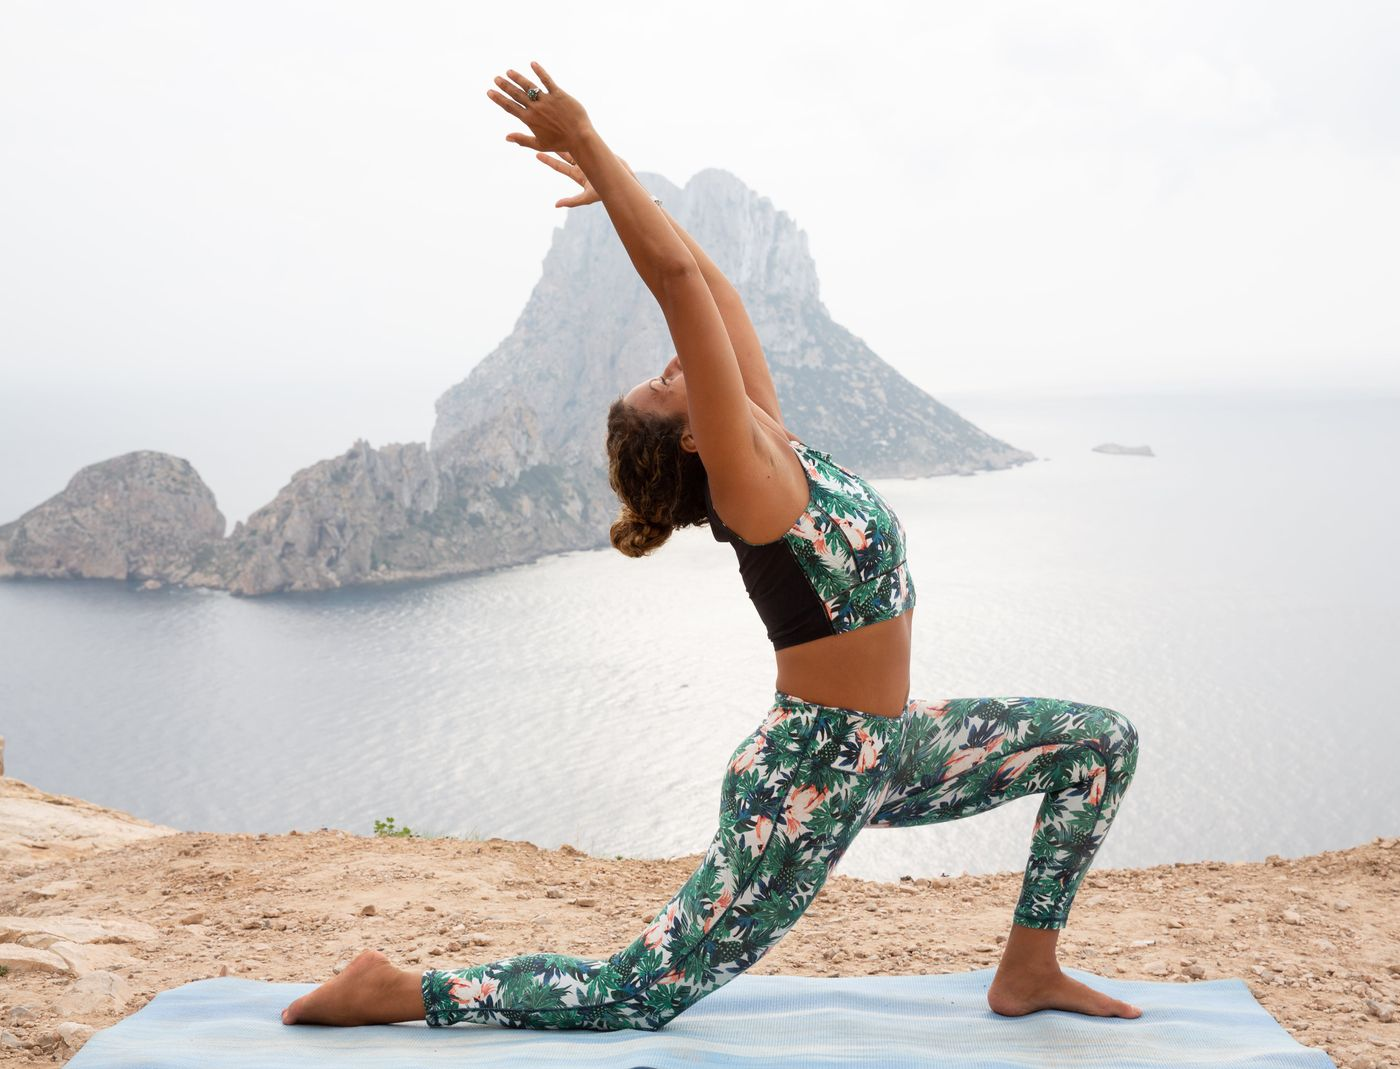 Happy Monday! Fancy improving your strength, mobility and flexibility? Then join me for  this evening at 7.30pm for a yoga class specifically designed for this - tonights theme: core and hip opening. Yoga stretches are amazing tools to help open up and strengthen the body and prepare it for dynamic sport & exercise and of course and most importantly to prevent injury!  x